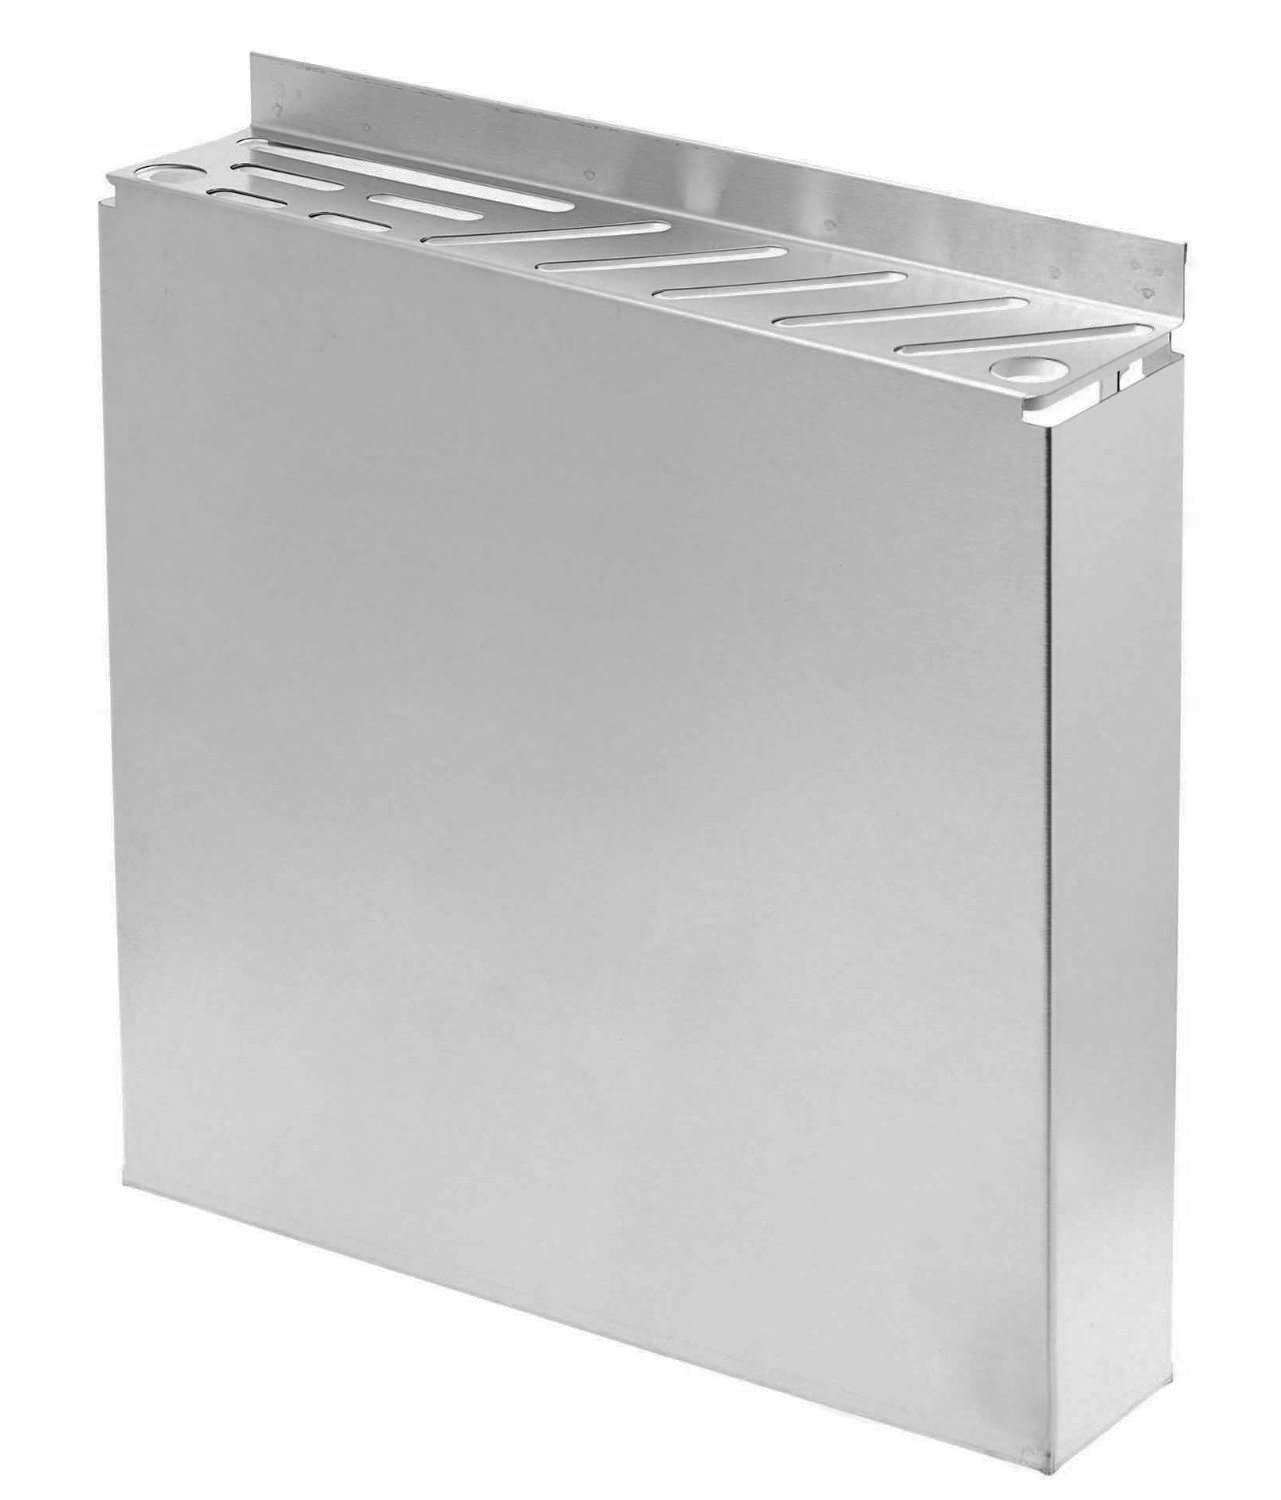 Stainless Steel Knife Rack - Fits Assorted Sized Knives - 12'' x 2.5''